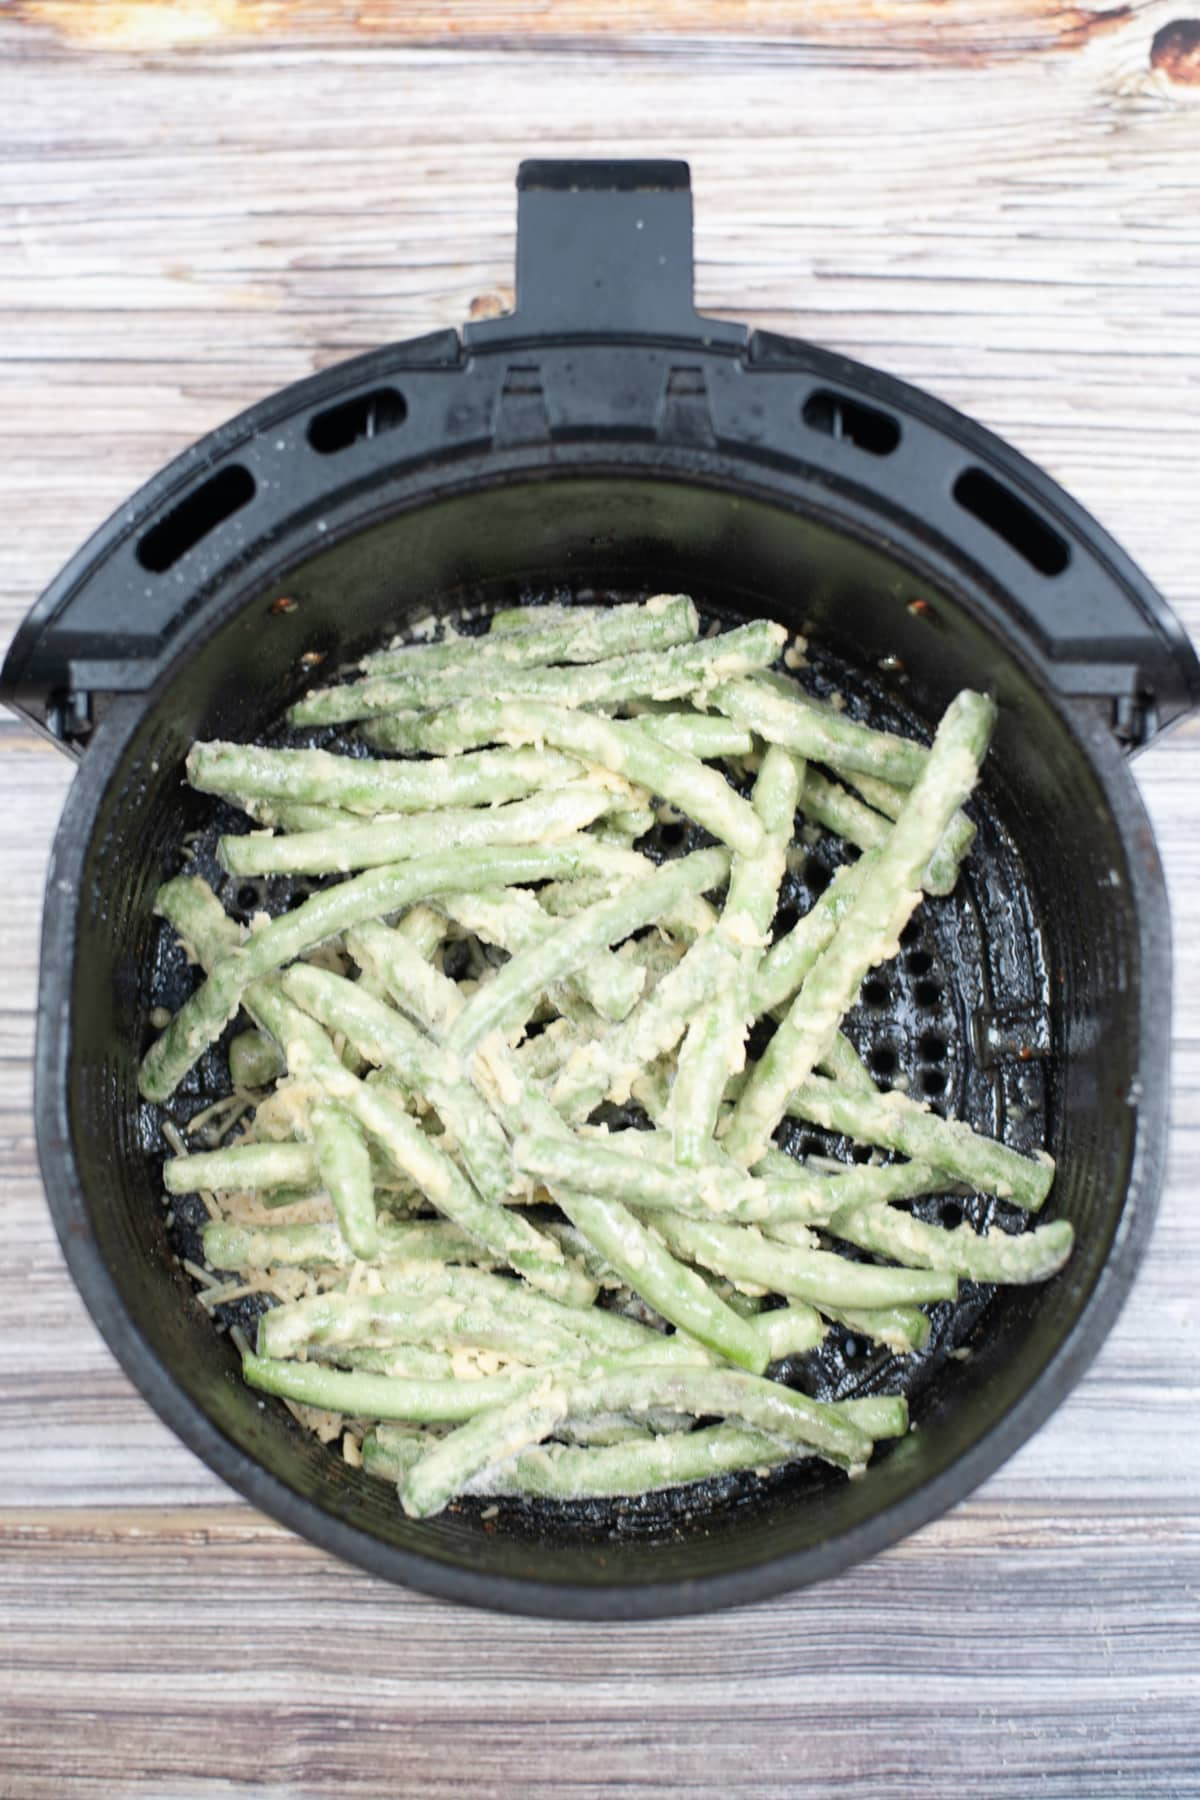 air fryer green beans arranged in the air fryer before cooking